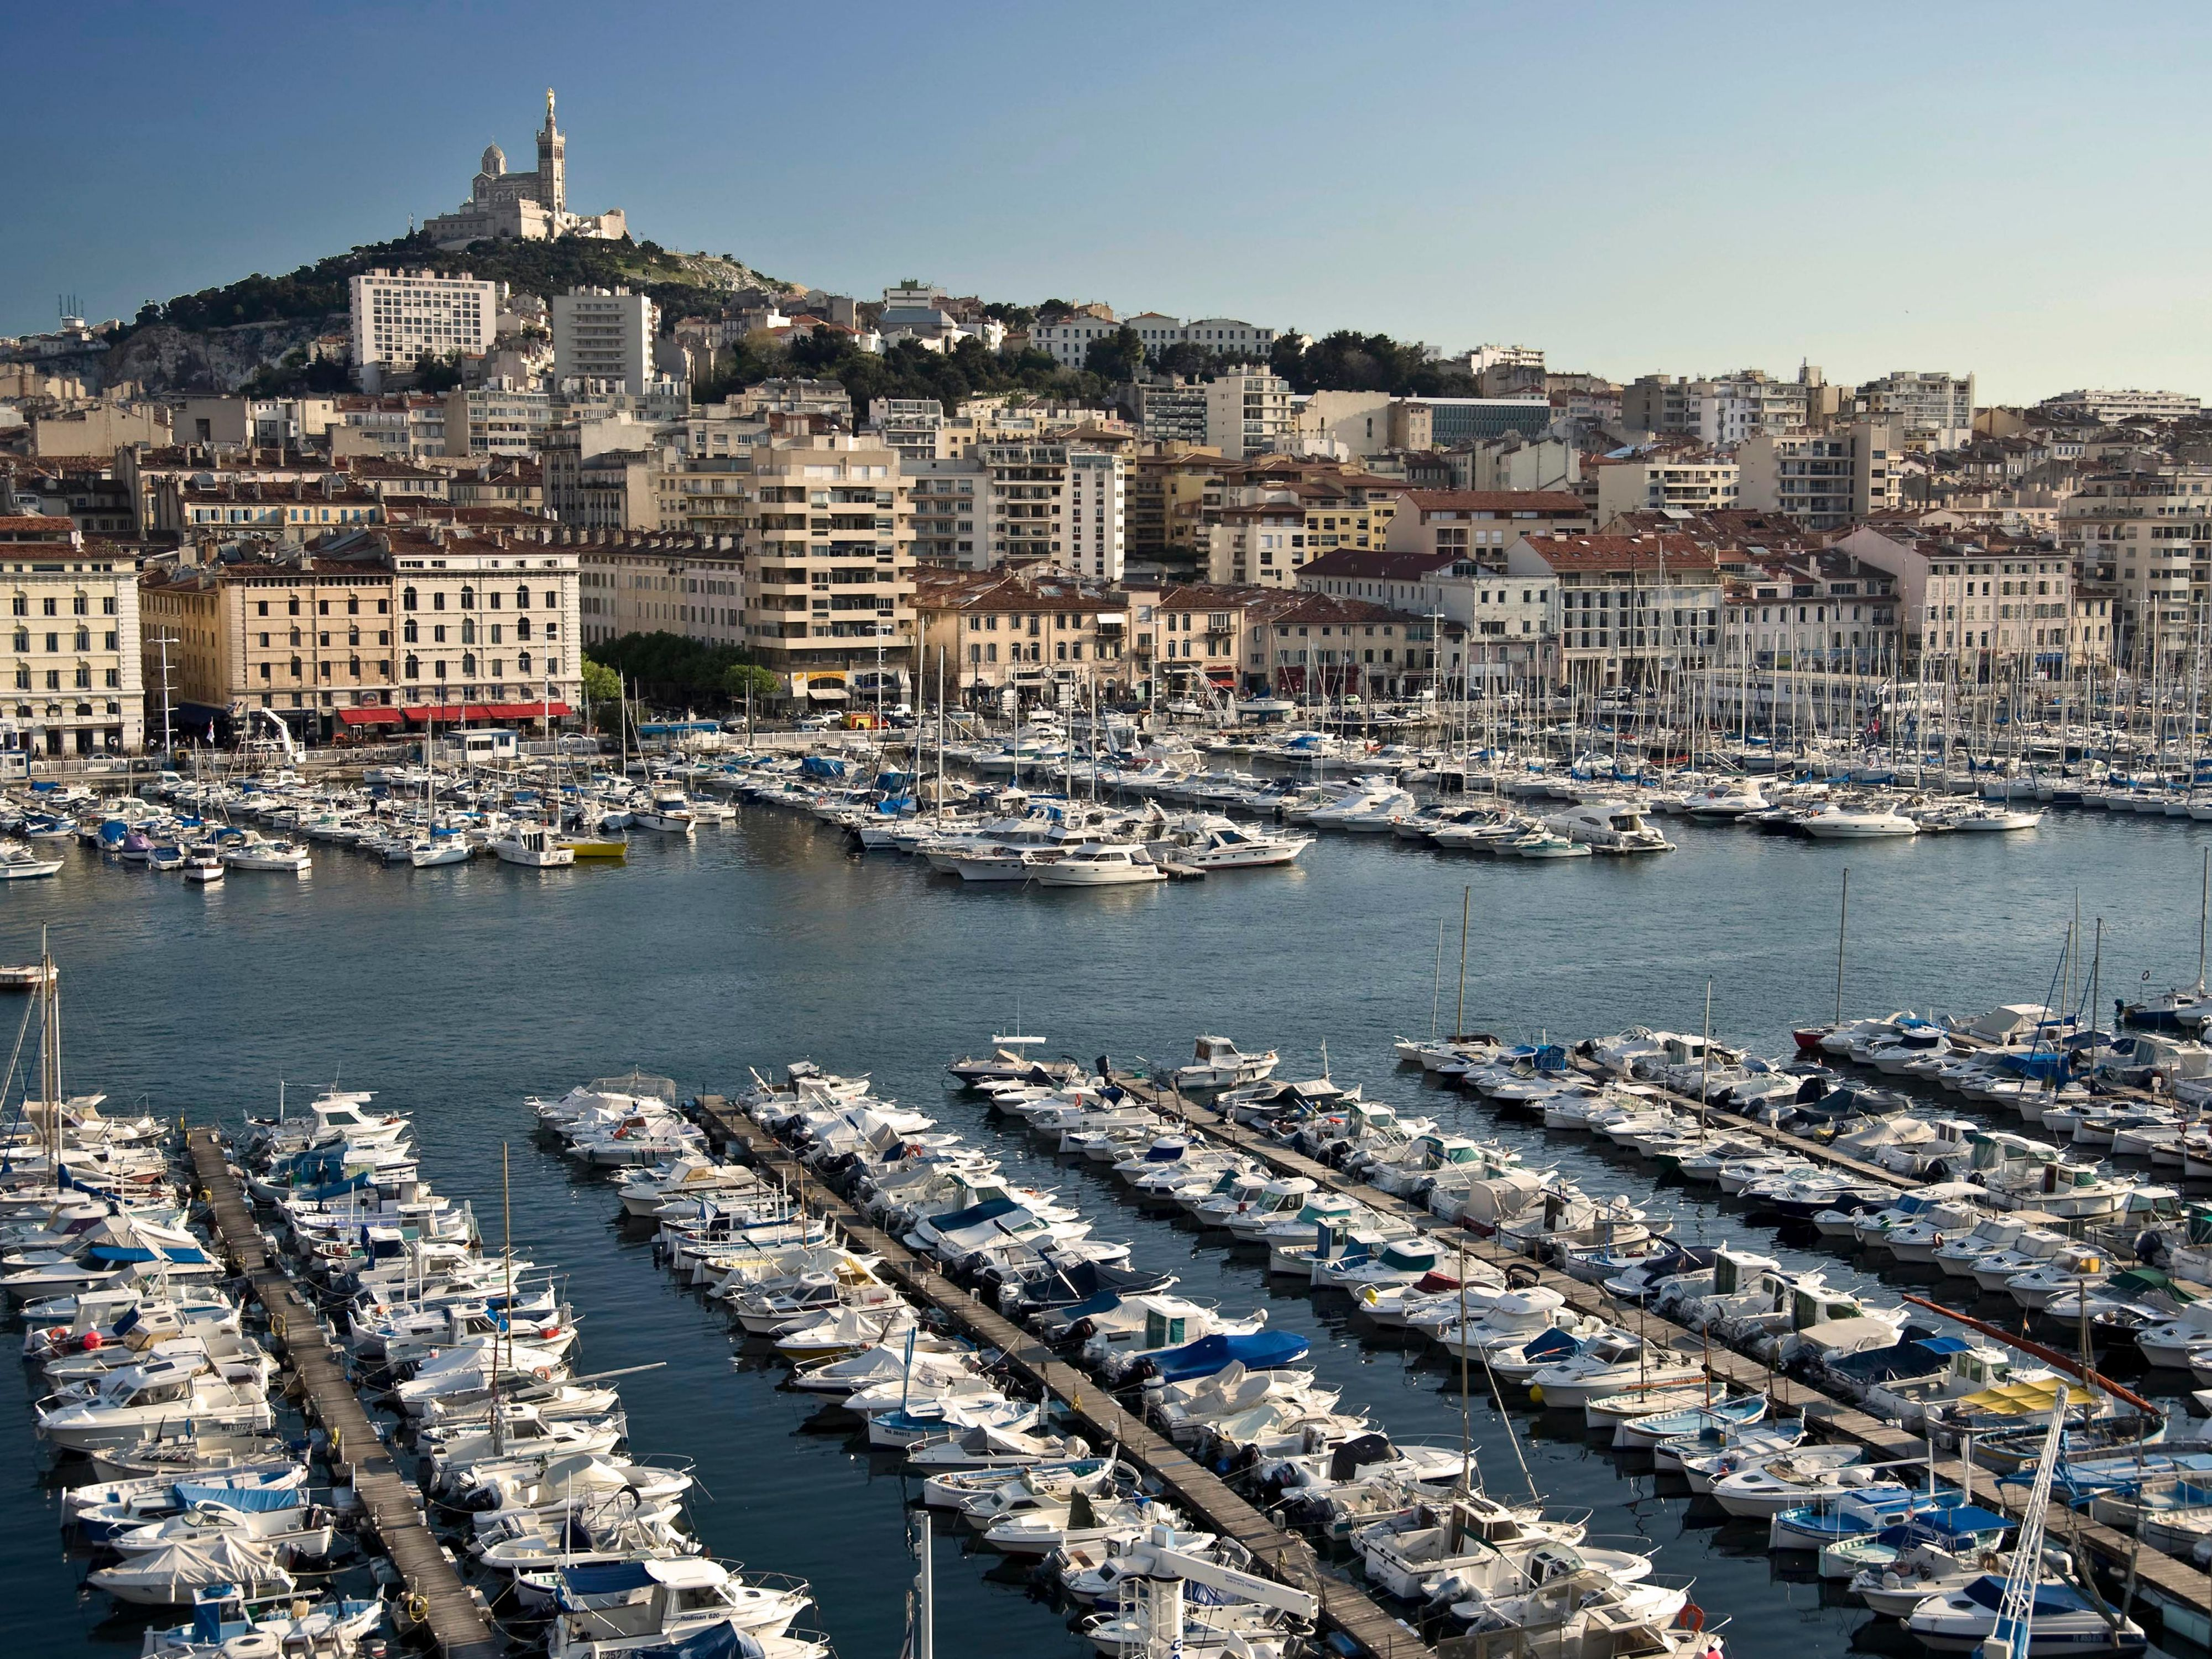 Old Port of Marseille (Vieux Port)